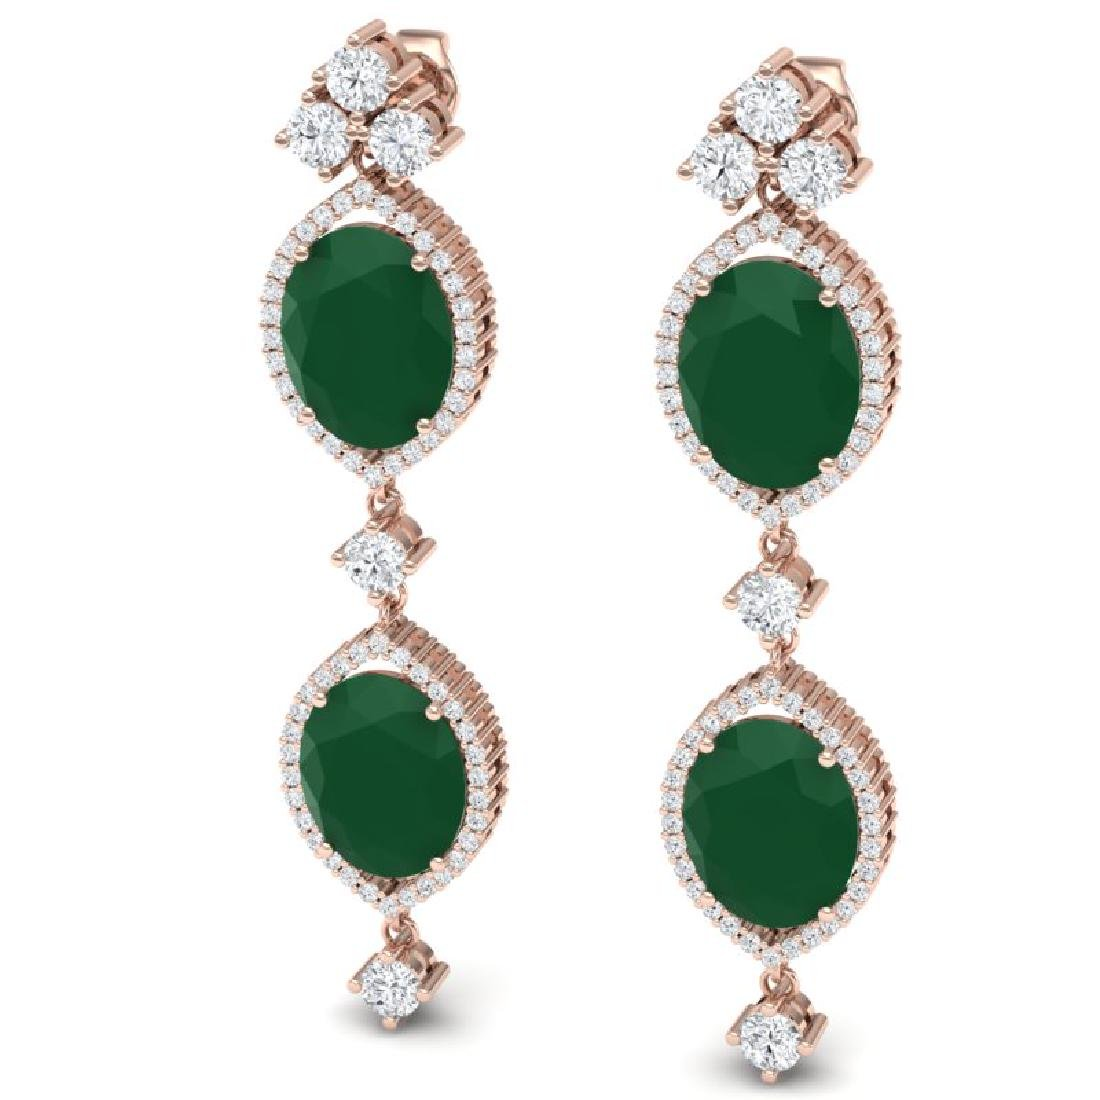 15.81 CTW Royalty Emerald & VS Diamond Earrings 18K